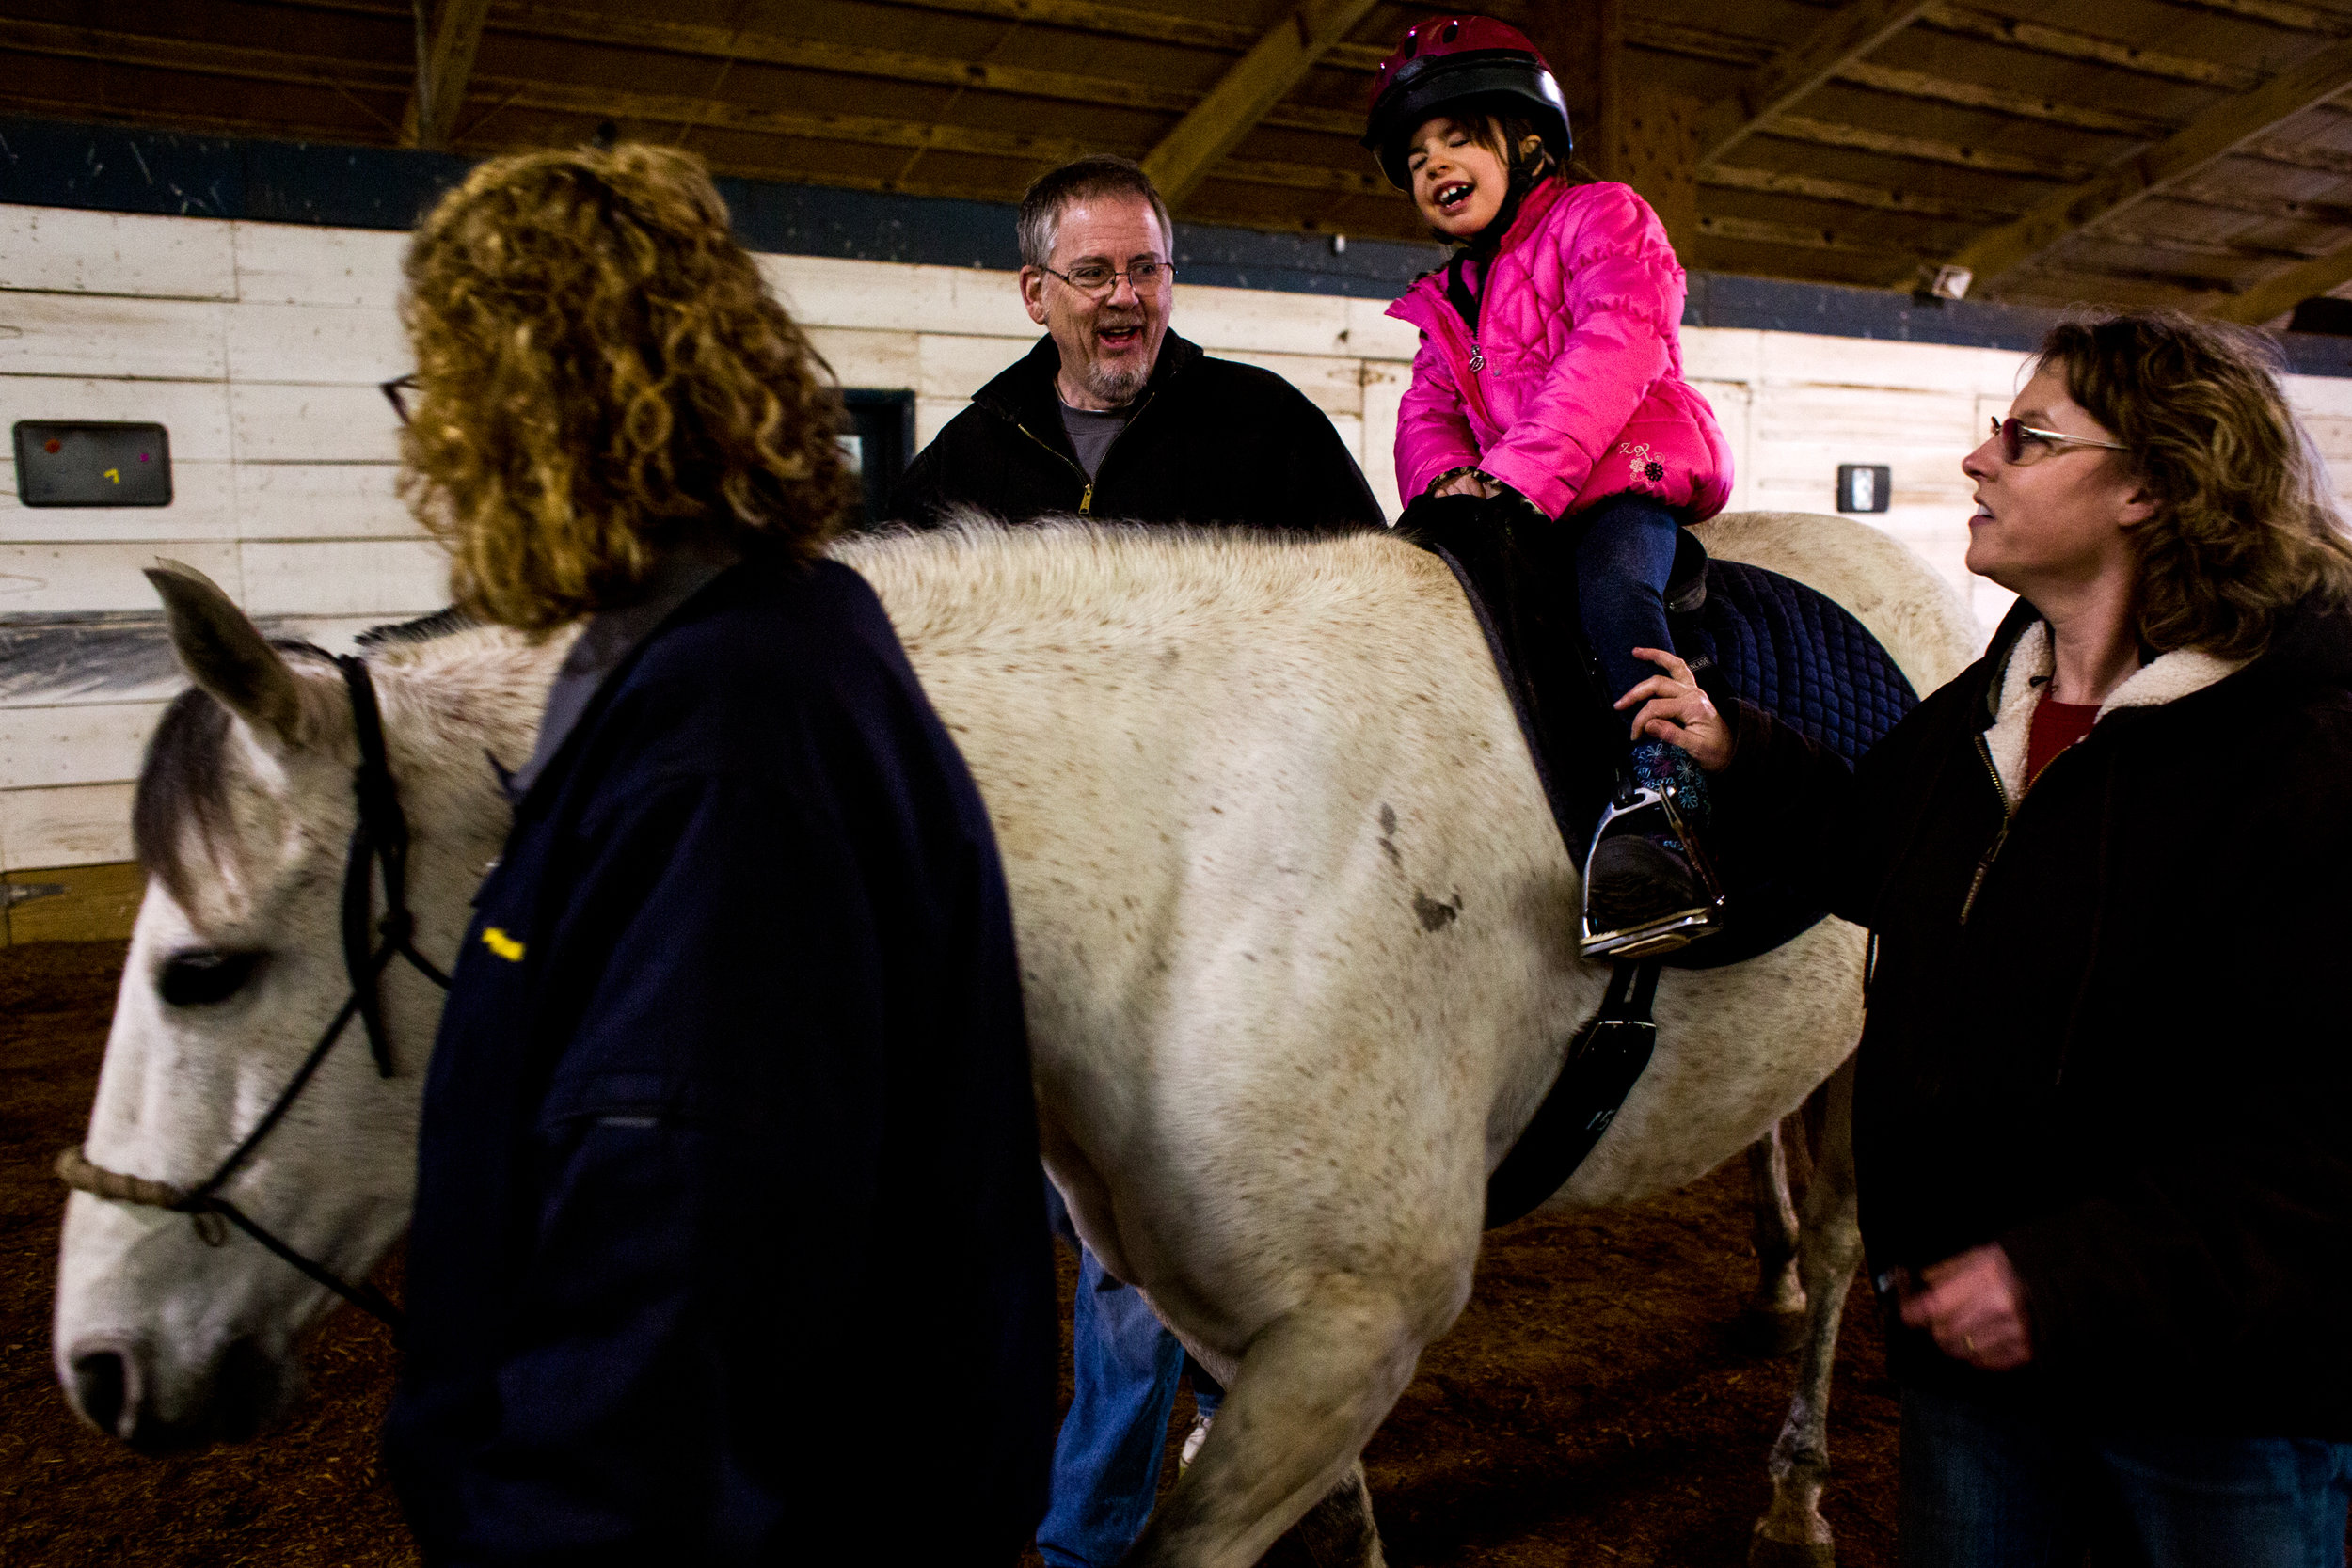 Charlotte Bradley of Ferdinand, 6,closed her eyes and counted to 10 before looking for a miniature horse figure that Hippotherapist Carrie Smith, right, had hidden in the barn during her hippotherapy lesson Thursday at Freedom Reins Therapeutic Riding Center in Jasper. Bradley has a genetic disorder called Prader-Willi syndrome, which includes symptoms like weak muscles and delayed development. Bradley began sessions with Smith last year as a way to improve coordination, balance and strength.